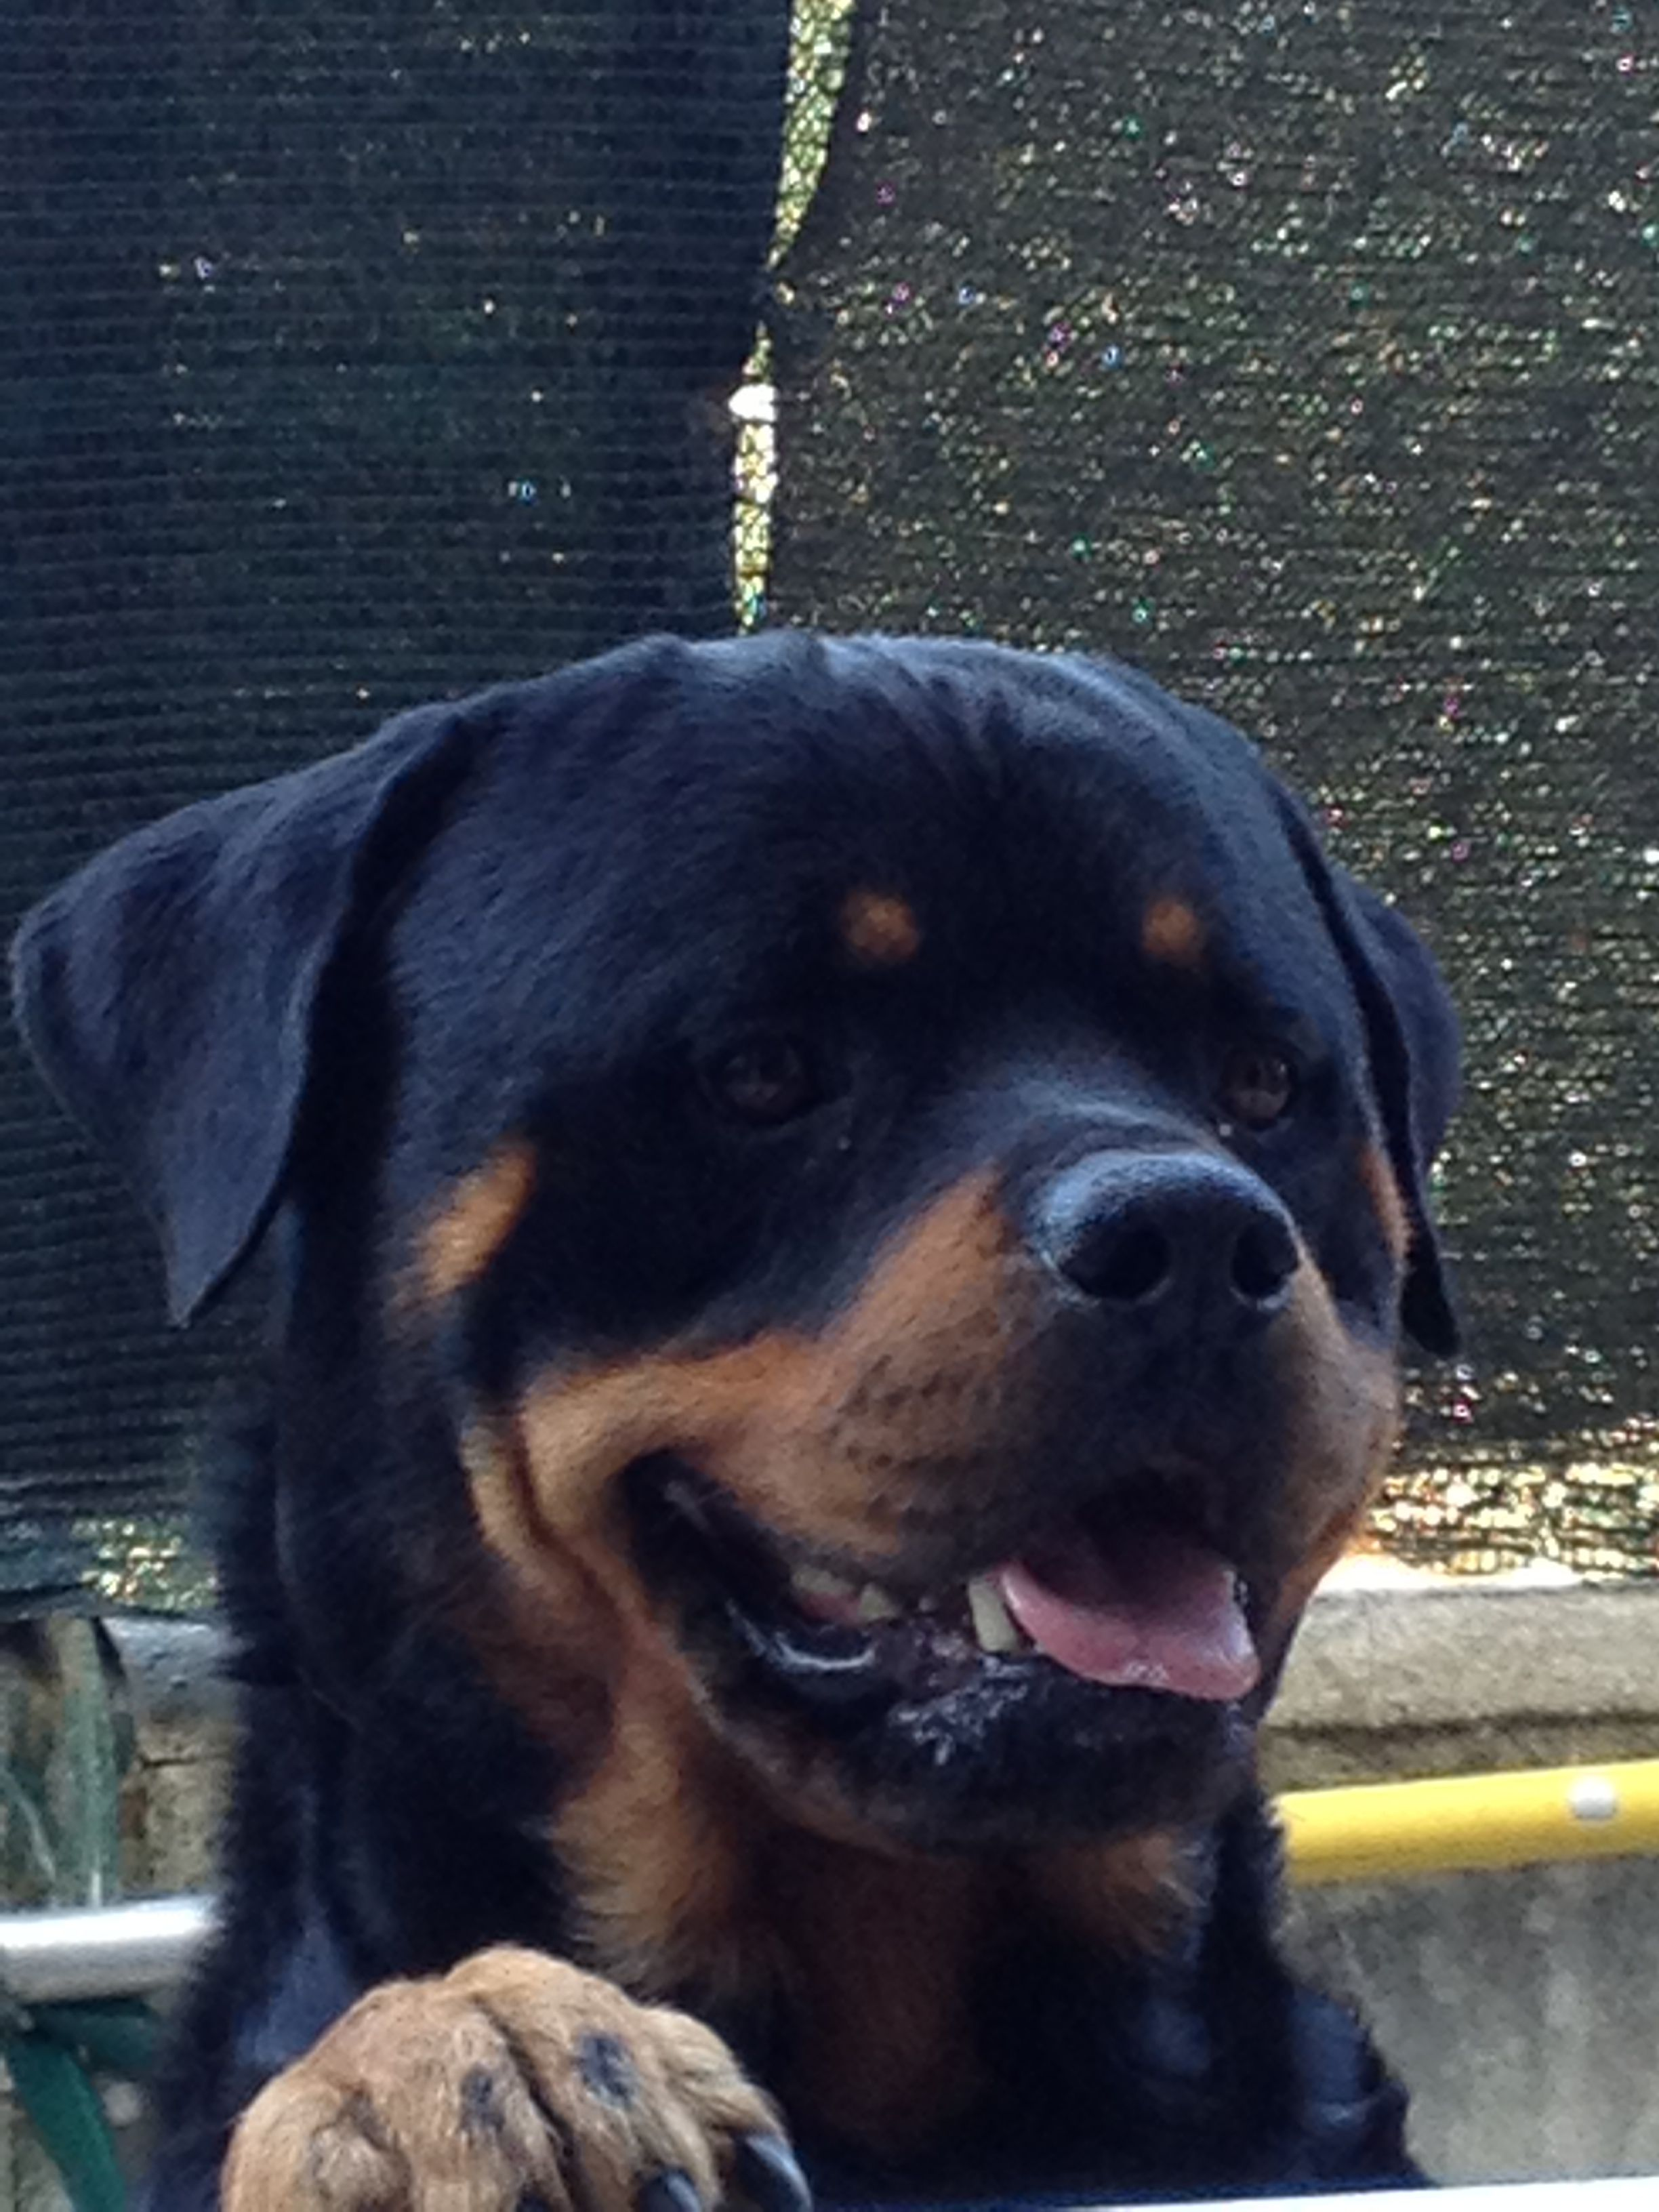 Rottie Rotties 3 Pinterest Rottweilers Rottweiler And Dog